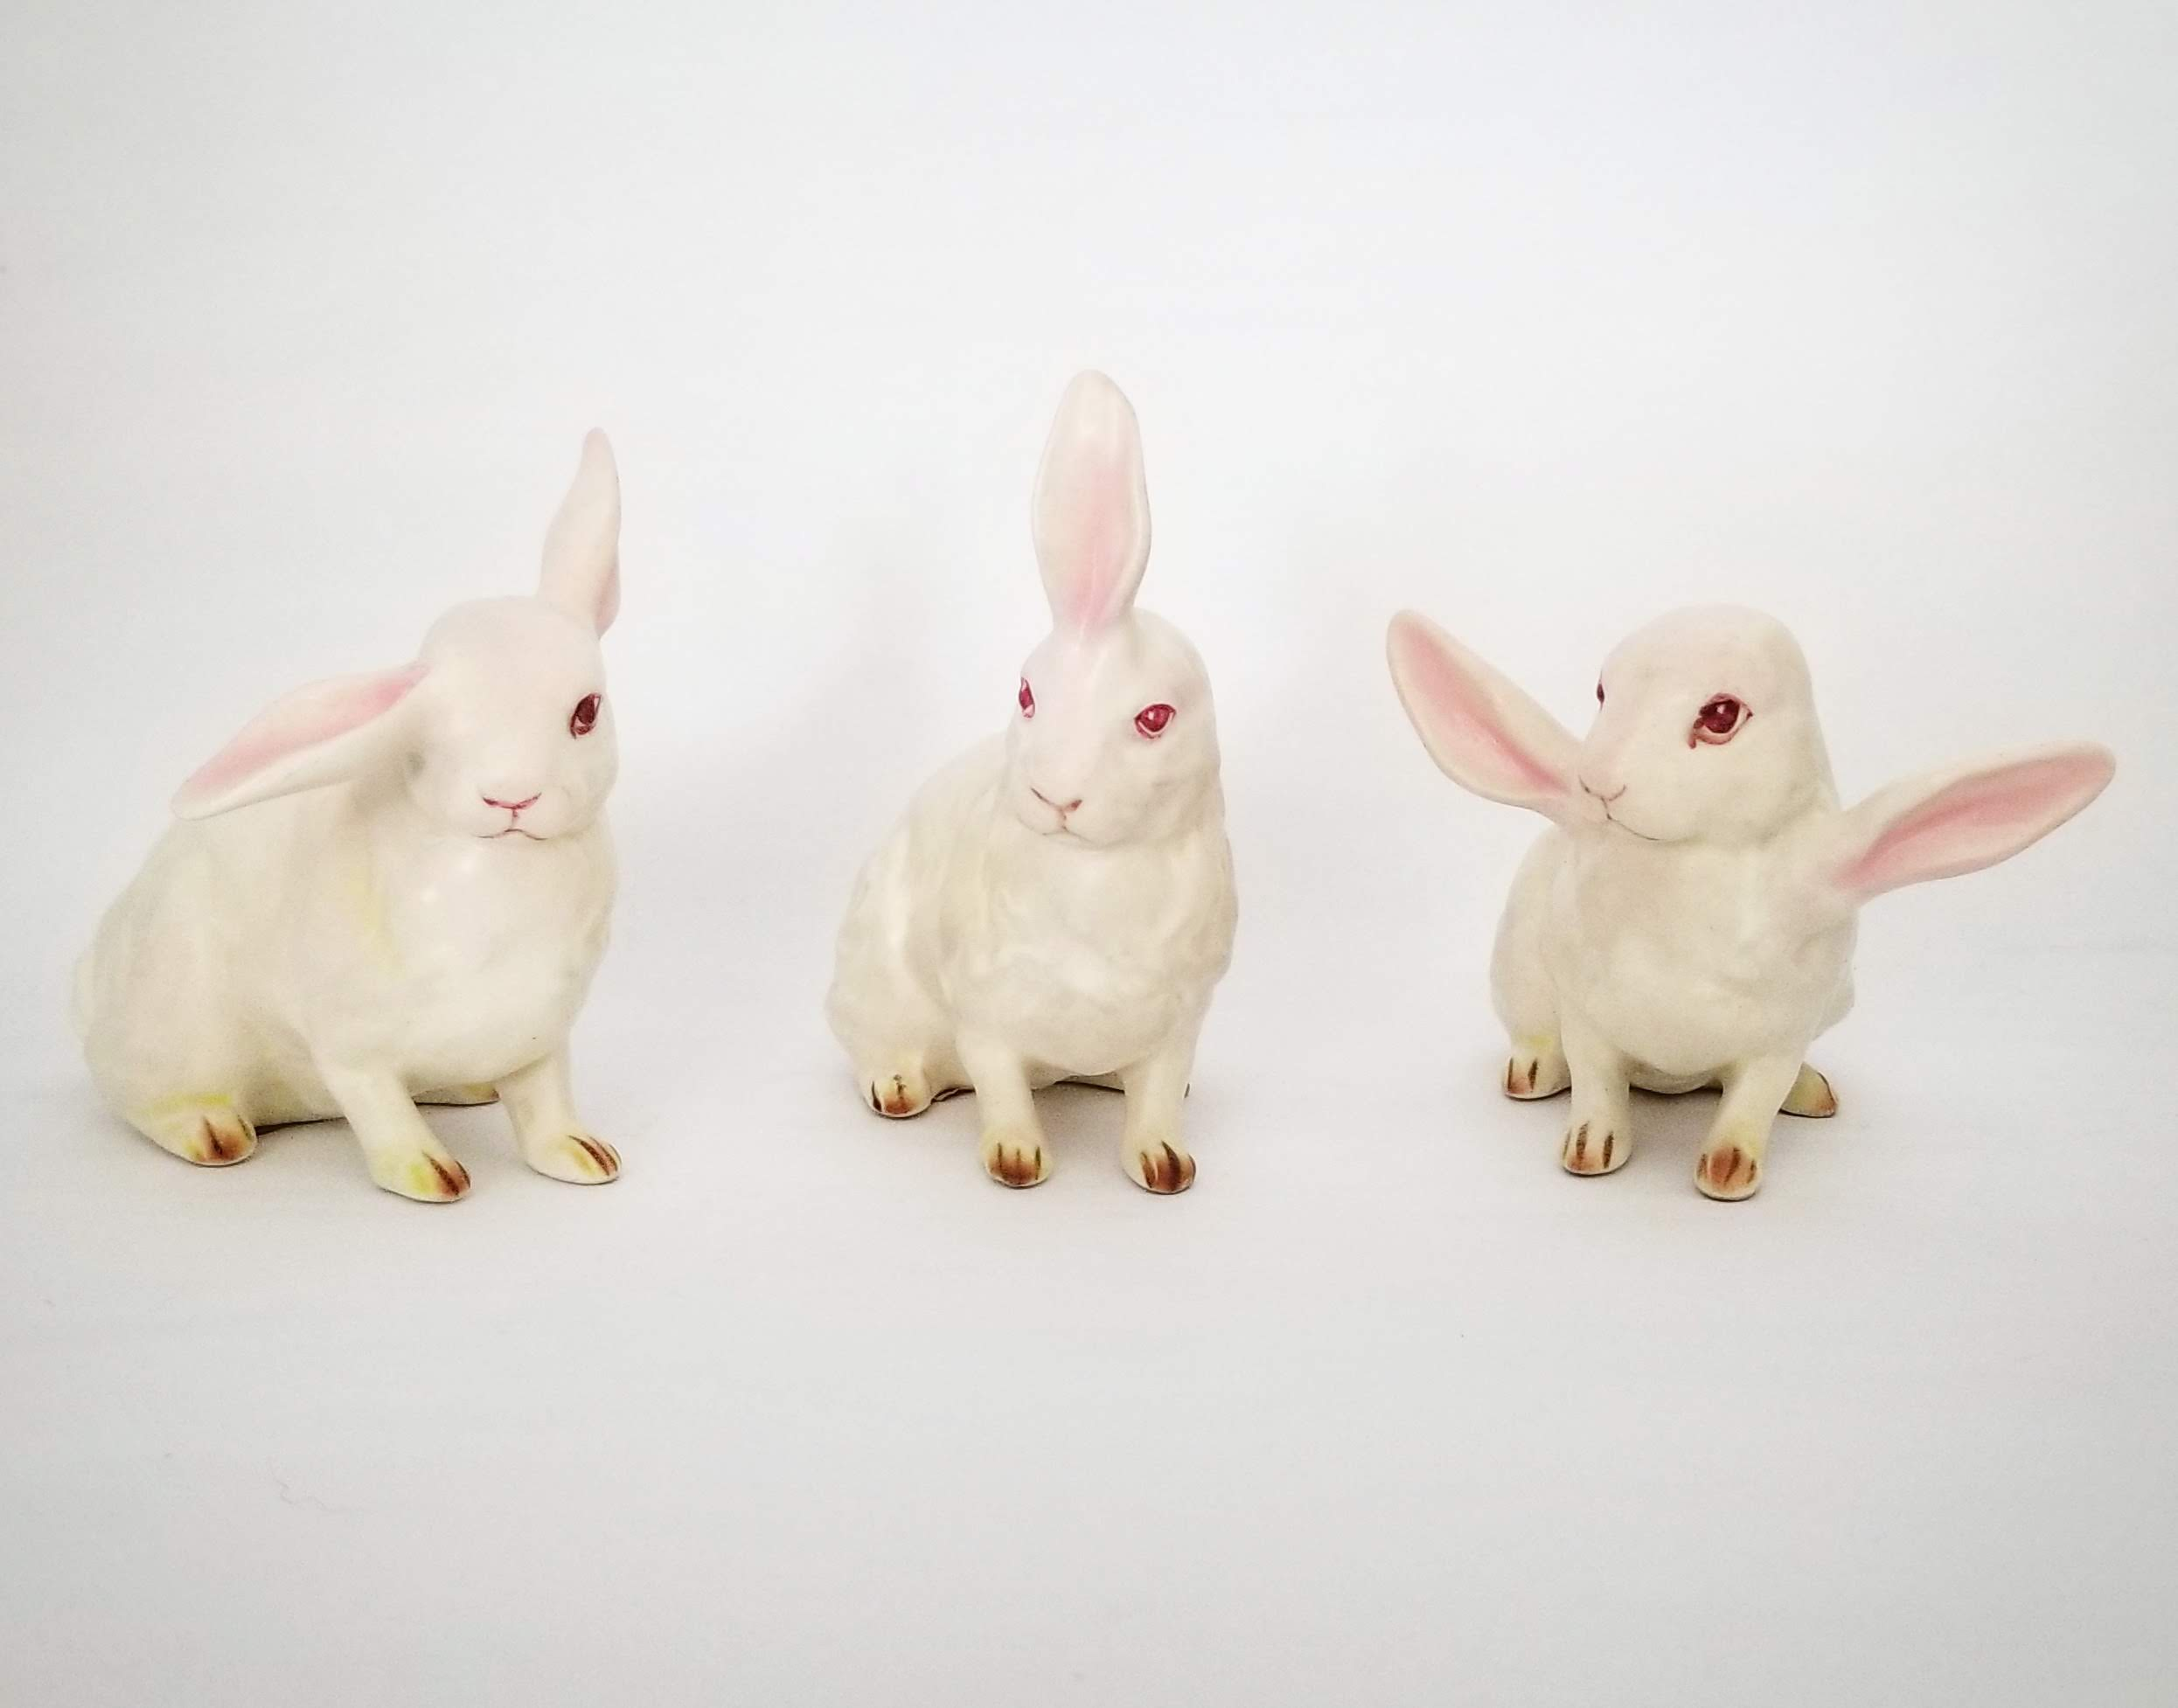 'White Rabbits' (3 x 4 x 2 inches each, secondhand ceramics and mixed media, 2019) by Debra Broz